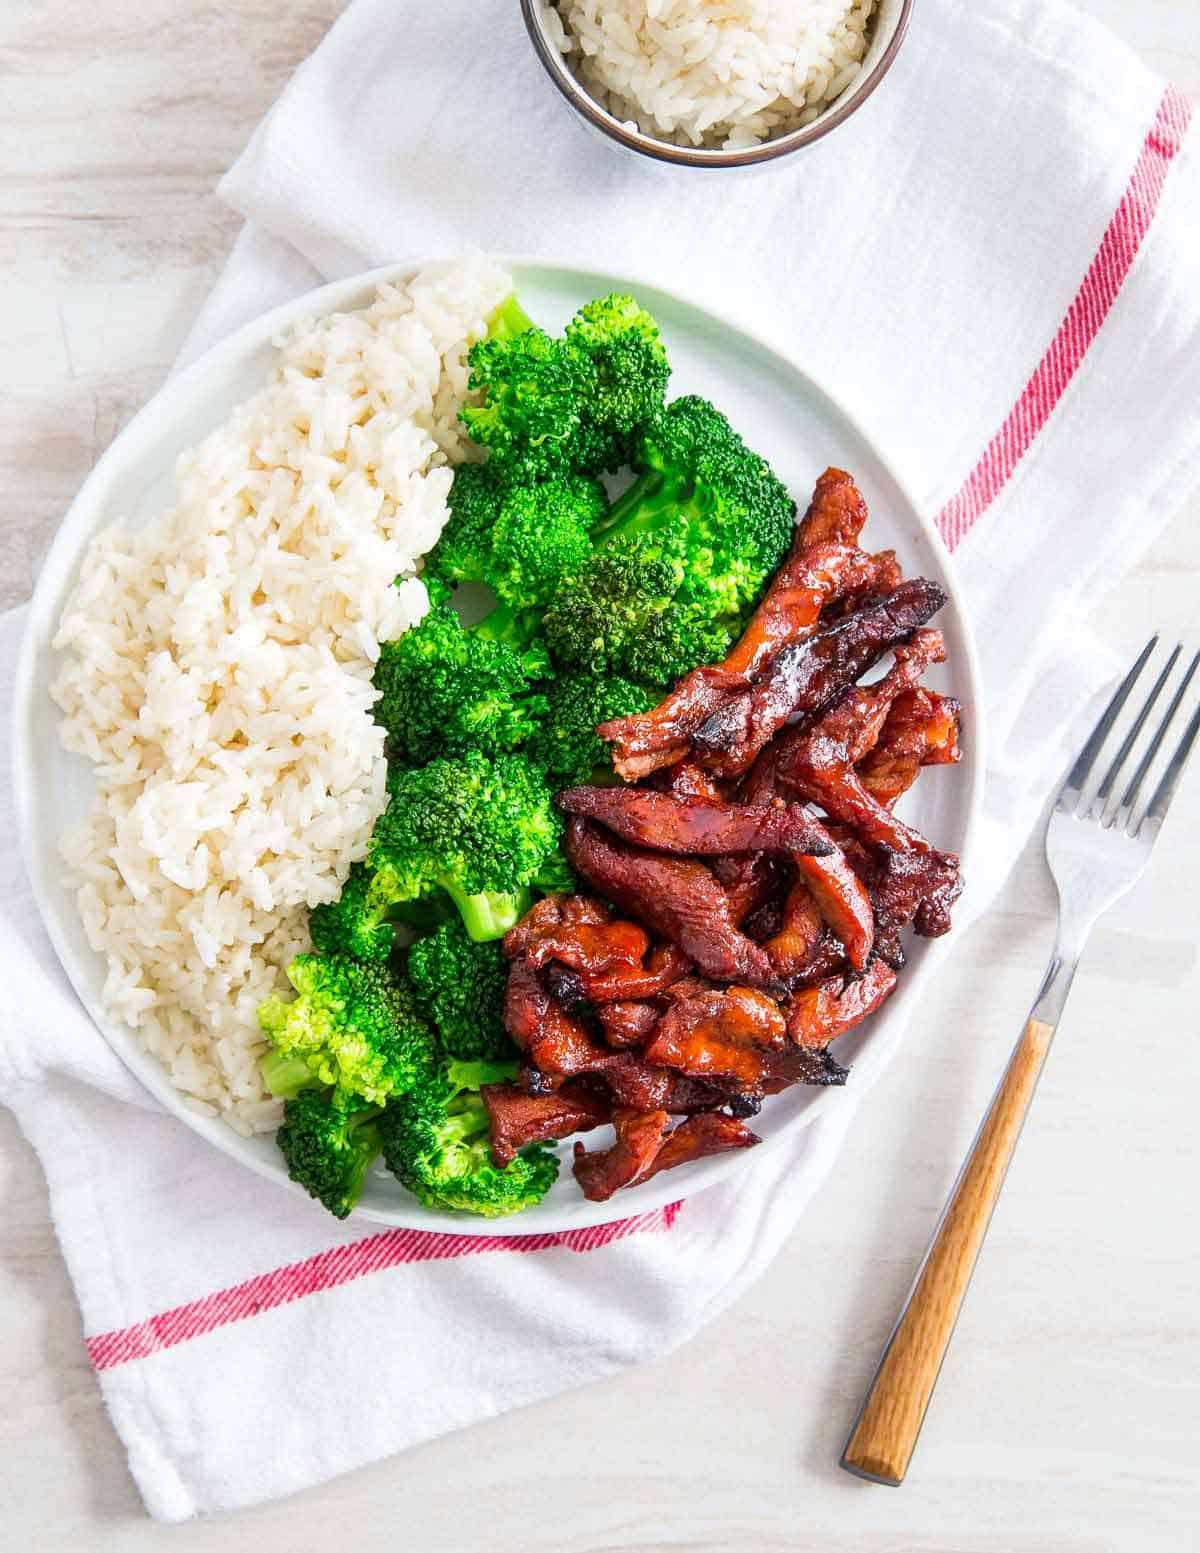 Enjoy these homemade Chinese boneless spare ribs with some white rice and steamed vegetables.